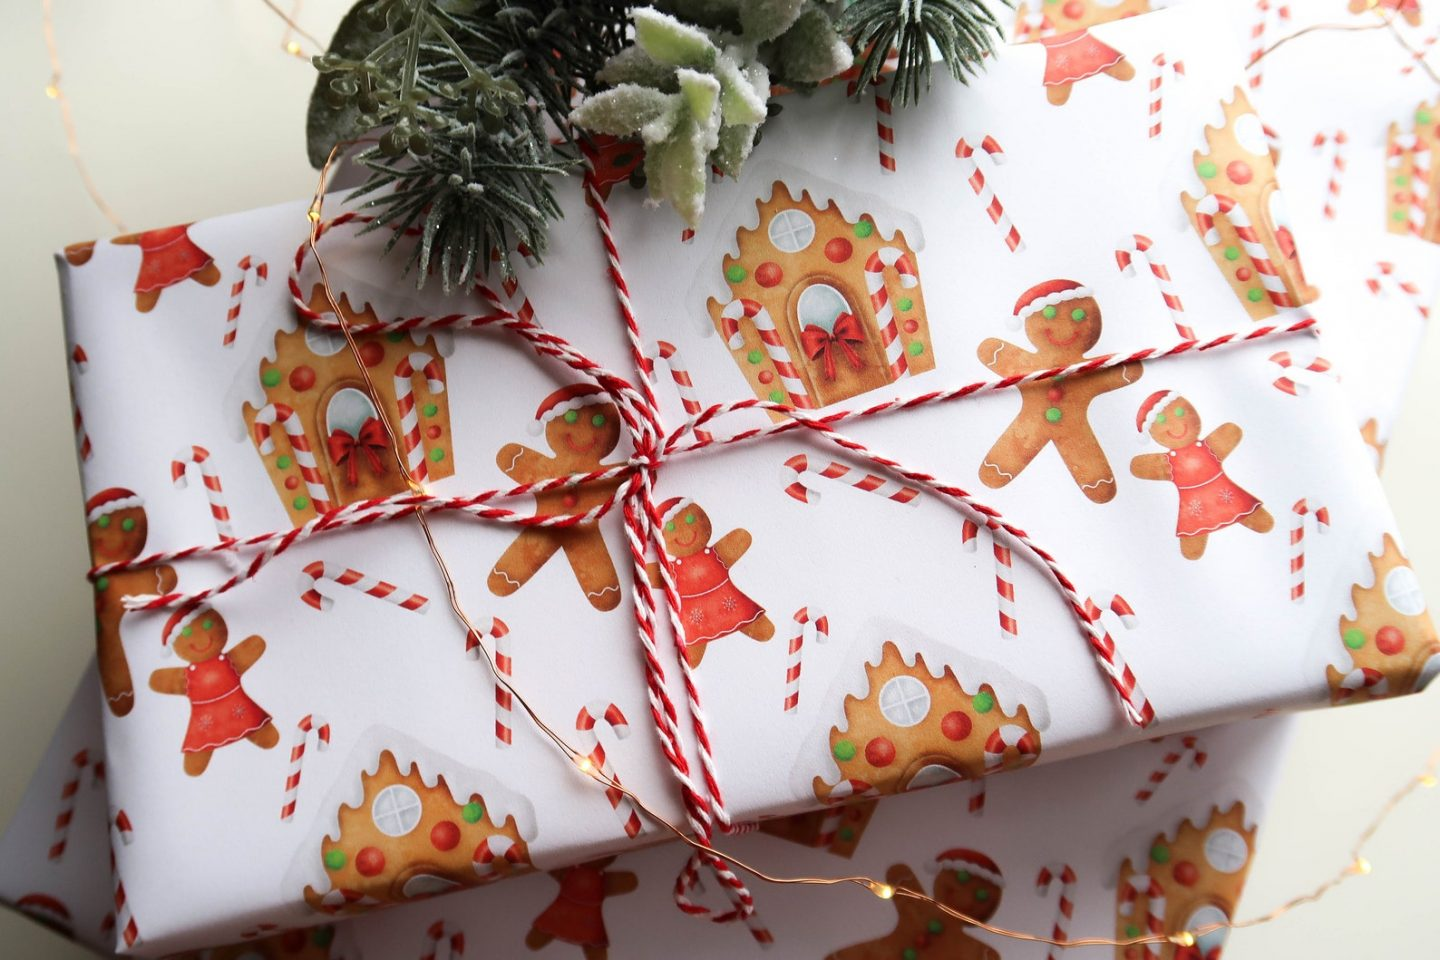 Gingerbread Man gift wrapping paper